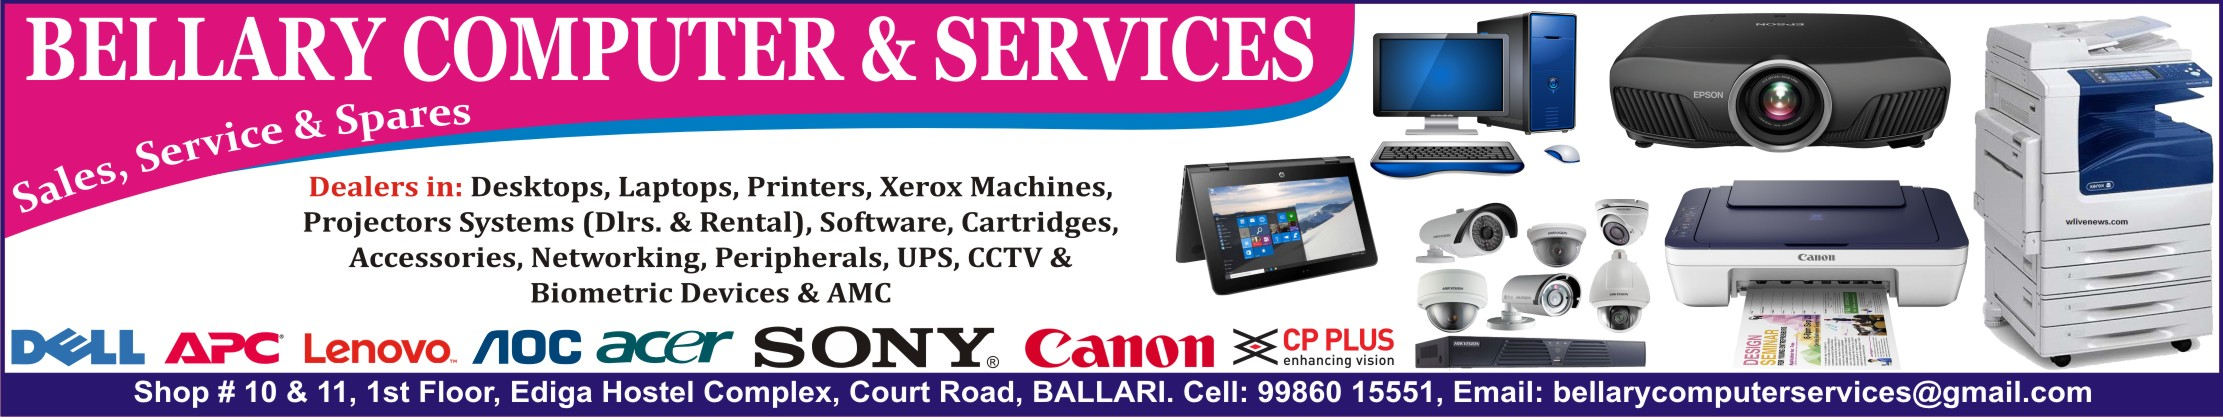 Bellary Computers and Services